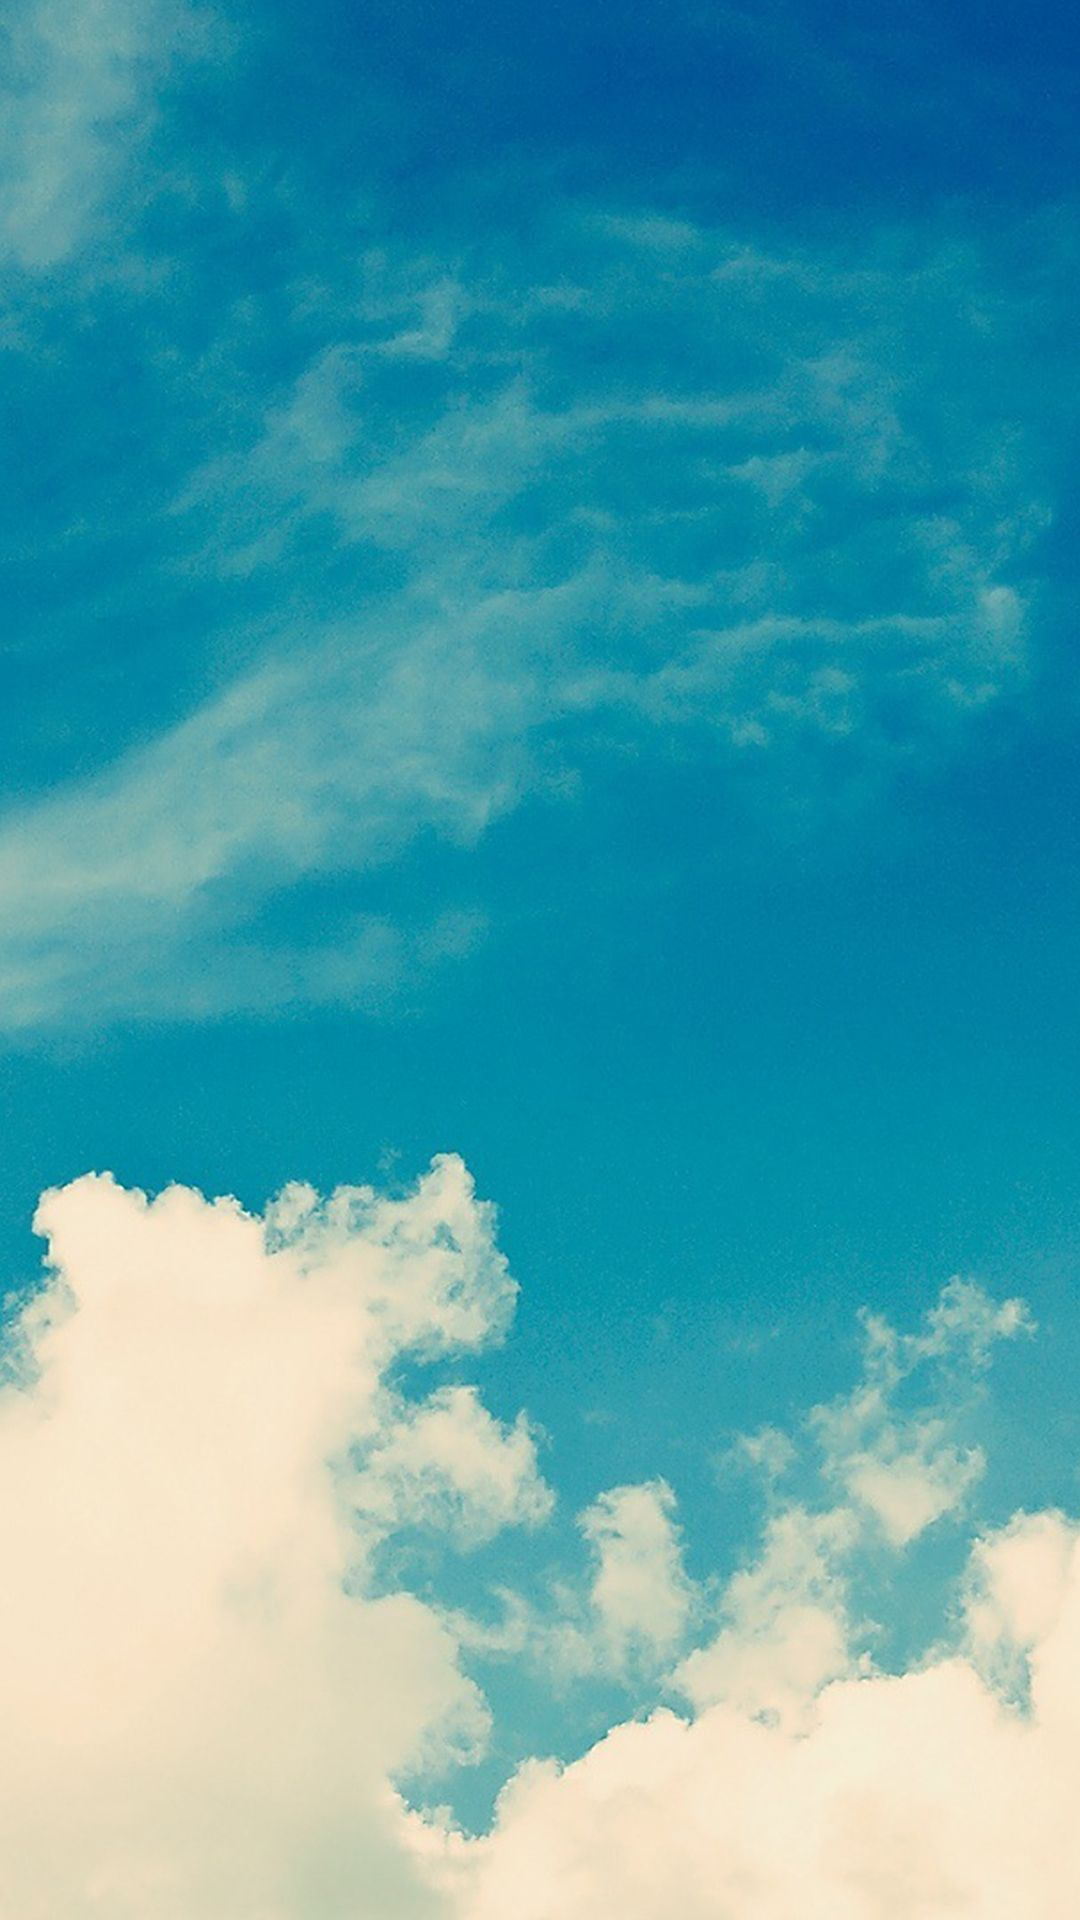 Vintage Aesthetic Clouds Wallpaper